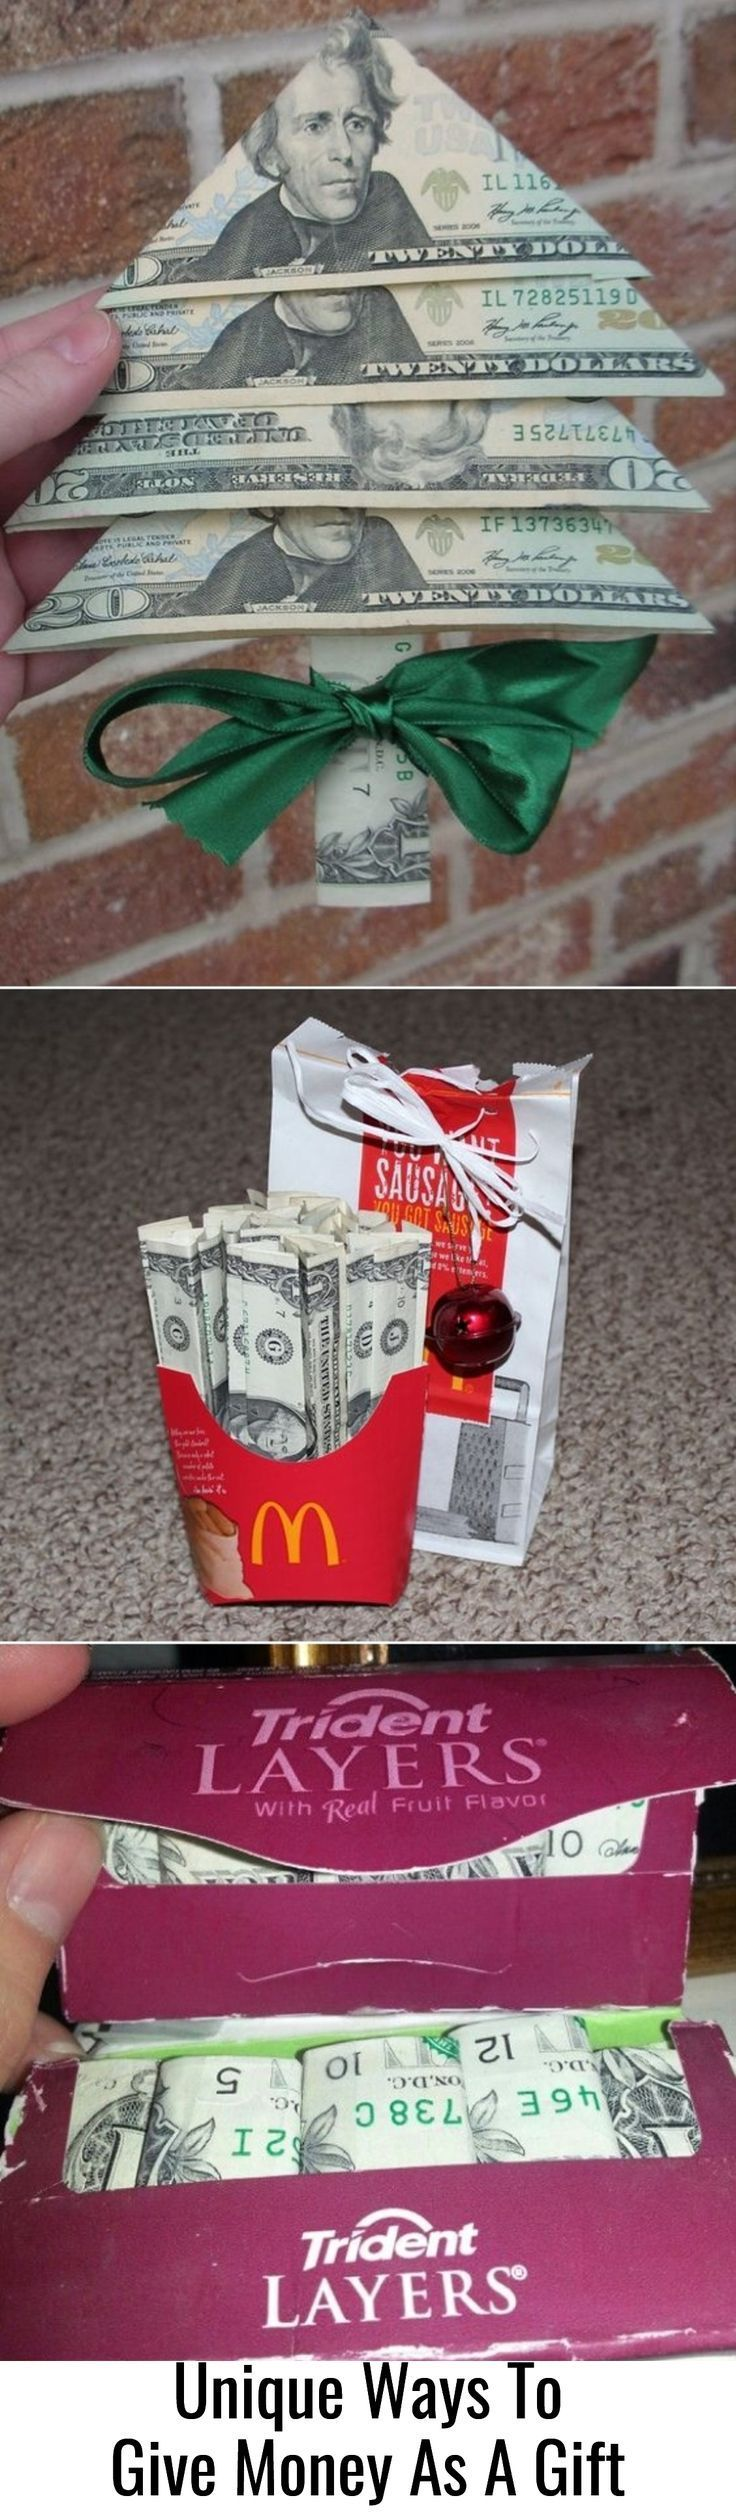 Creative money gifts - folding money DIY - fun (and funny) DIY cash gifts - cute ideas for giving money as a gift for Christmas, birthday etc #ideasforchristmasgiftsforkids